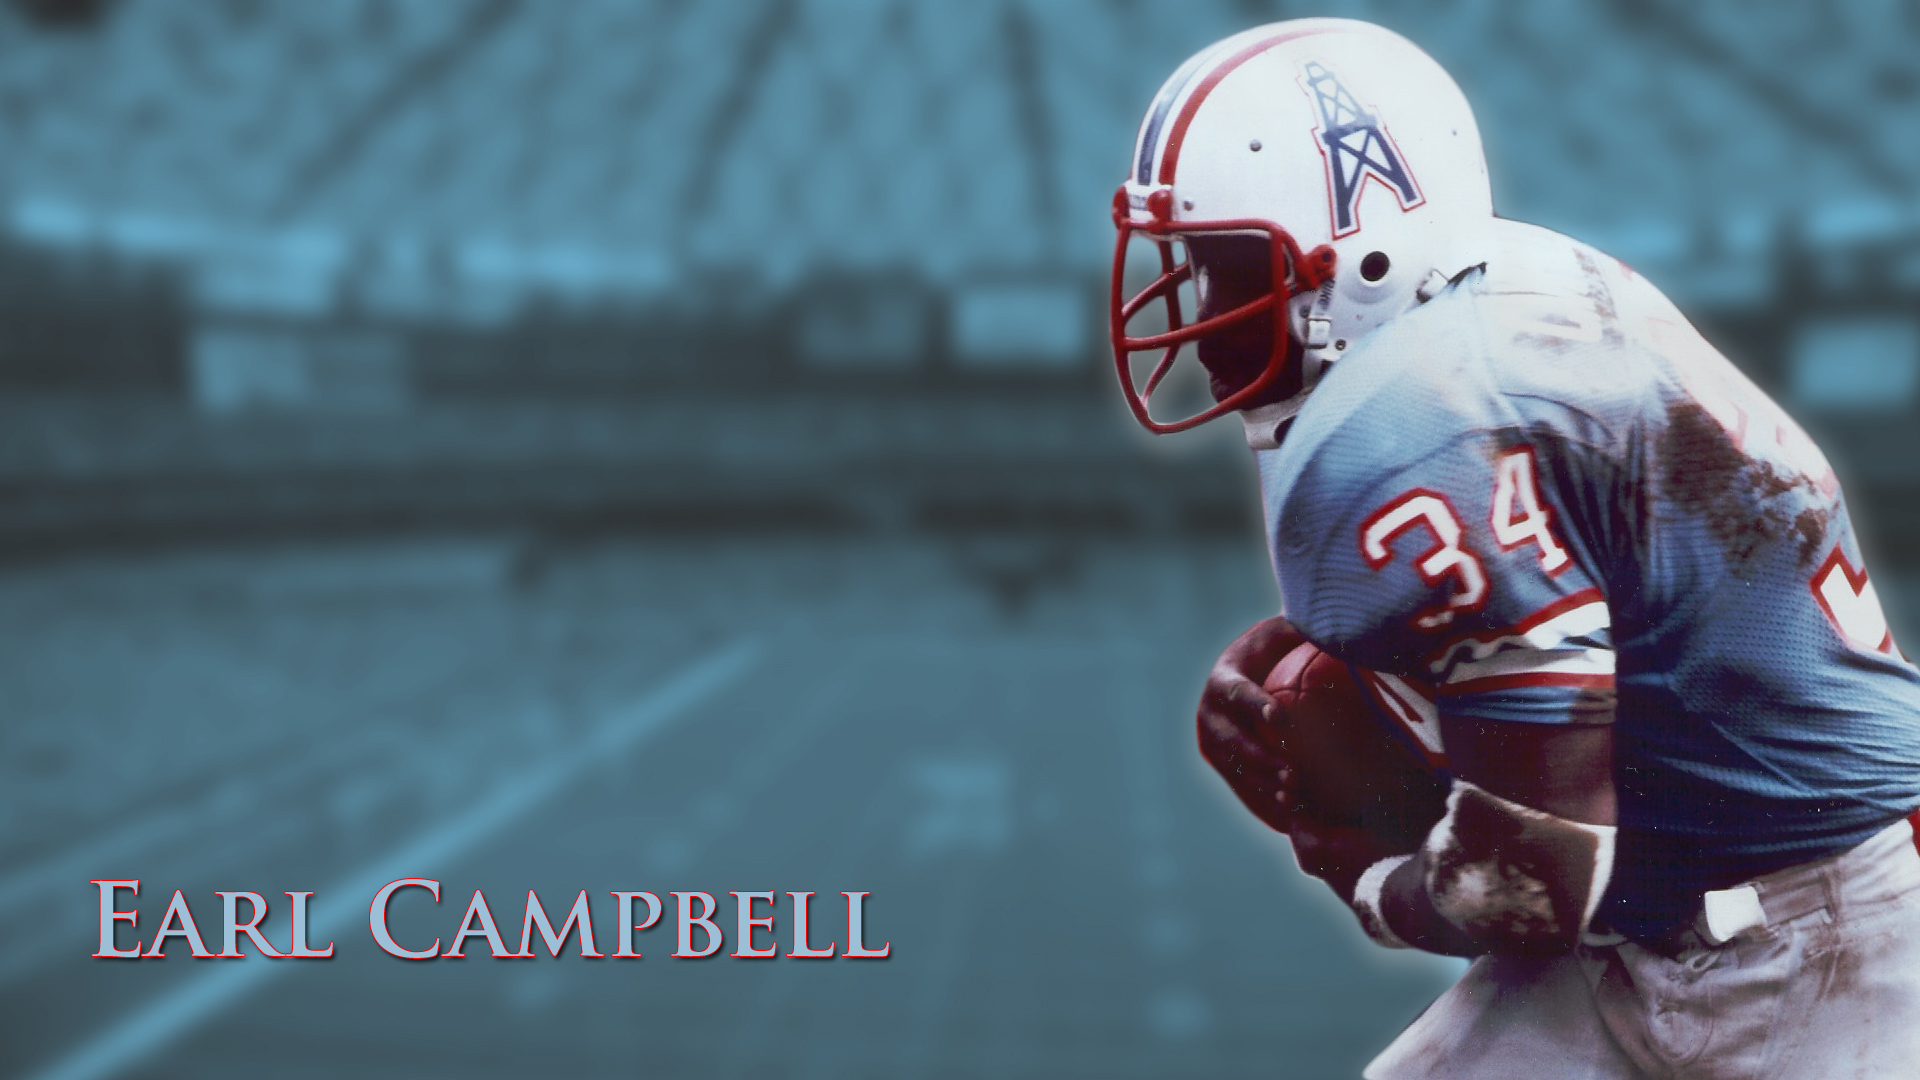 Quotes by Earl Campbell Like Success 1920x1080